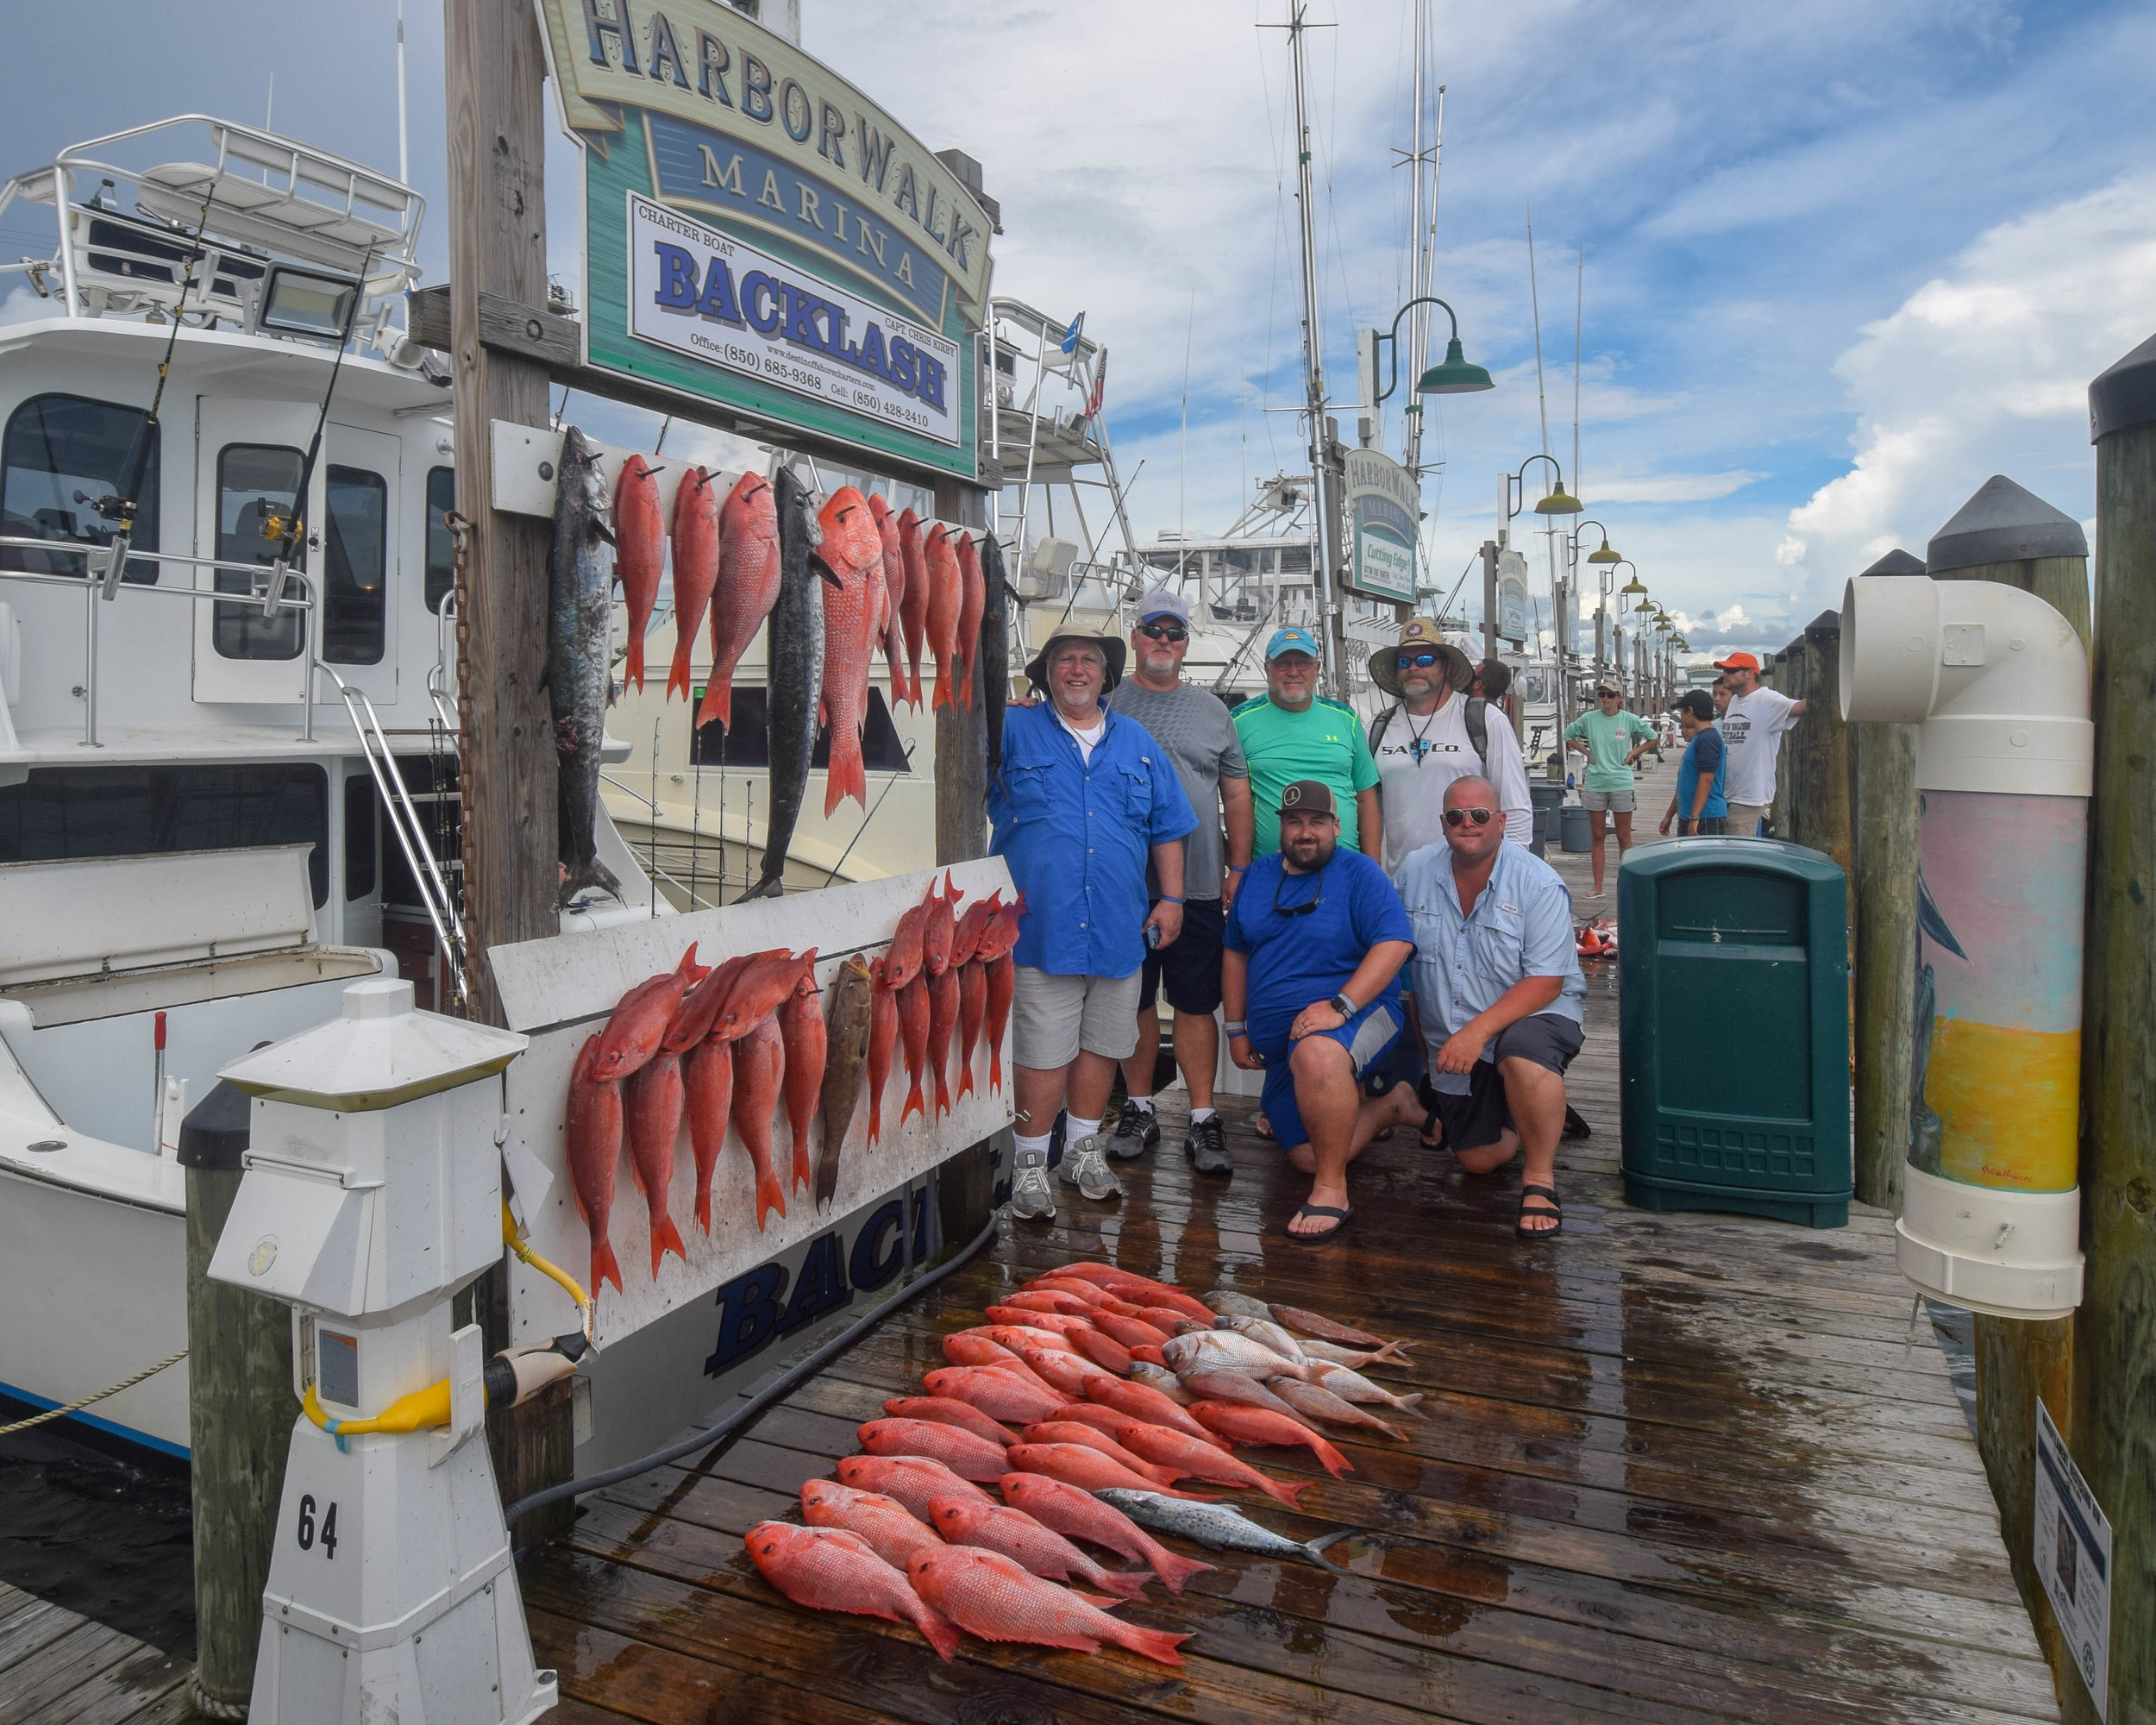 2018 Joint Summer Meeting - What a great meeting in Sandestin!!!We had a great crowd increase over last year with over 50 at Dinner Friday night!Some of us had a great time on a Fishing Trip on board the BACKLASH with Captain Chris Kirby.We caught the limit on Red Snapper and Mingo Snapper and then we ate fresh fish for Dinner and still took home enough for large fish fry!!!The fishermen were (left - right)Bubba Lammons, David Roberts, Bob Barnes, Jeff Duncan, Kevin Lammons, and Britt Barnes.